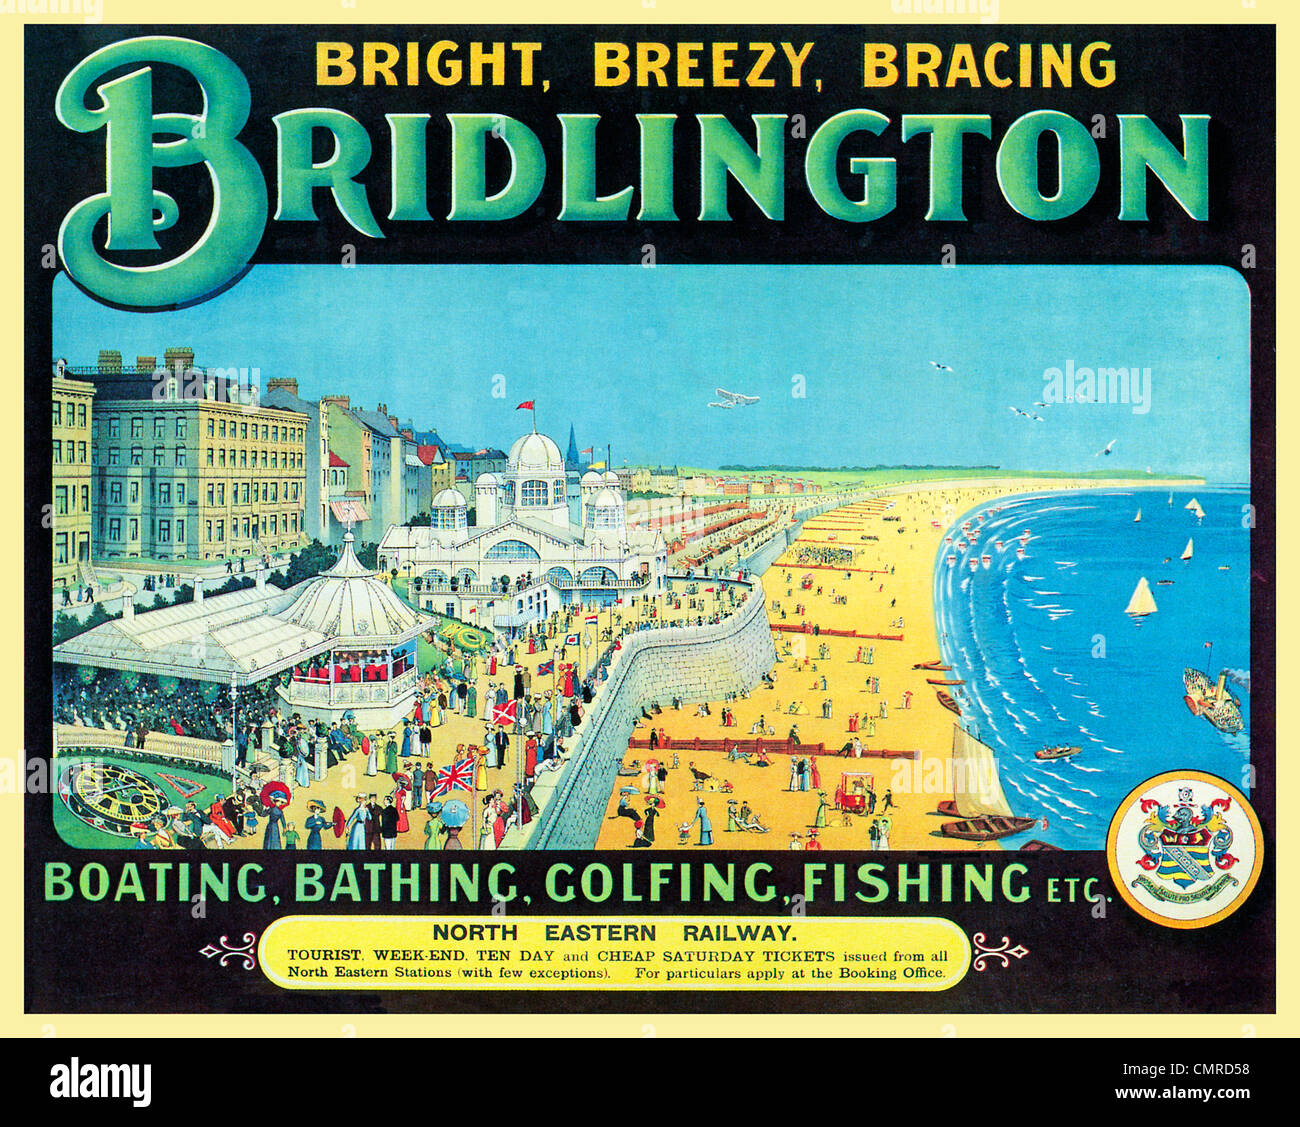 Bridlington, Promenade, 1913 poster from the North Eastern Railway for the Bright Breezy Bracing Yorkshire resort - Stock Image